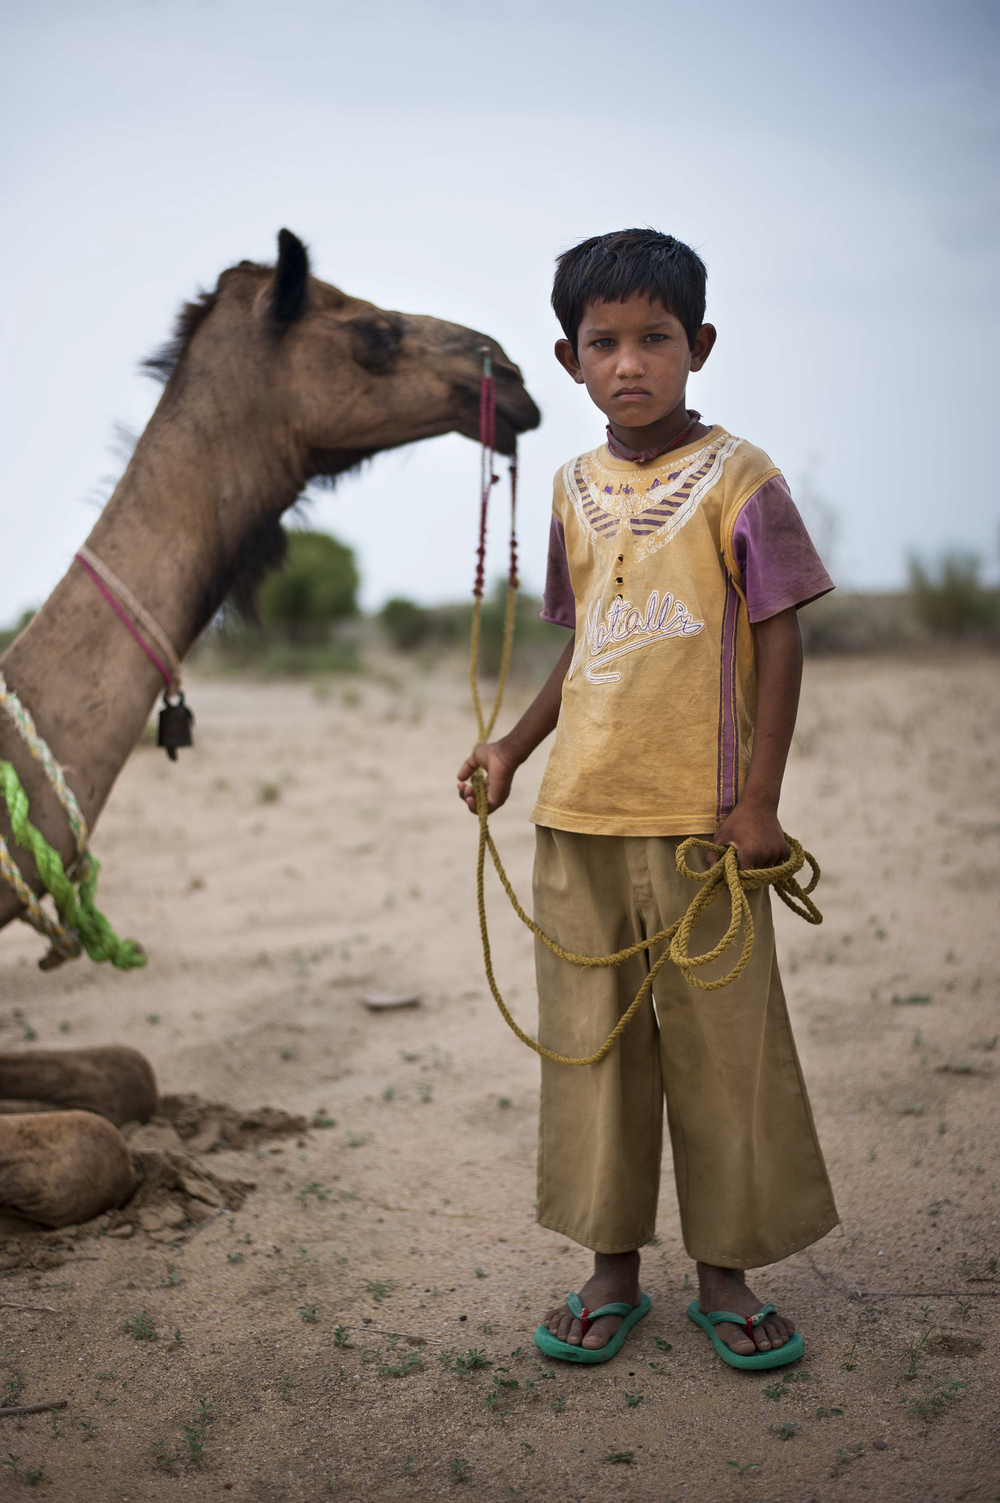 Bujha, age 10, a camel safari guide, poses with Raja in the Great Thar Desert outside of Jaisalmer, Rajasthan, on July 25, 2015. Camel safari guides start training around age 10 to continue the business when they grow older.